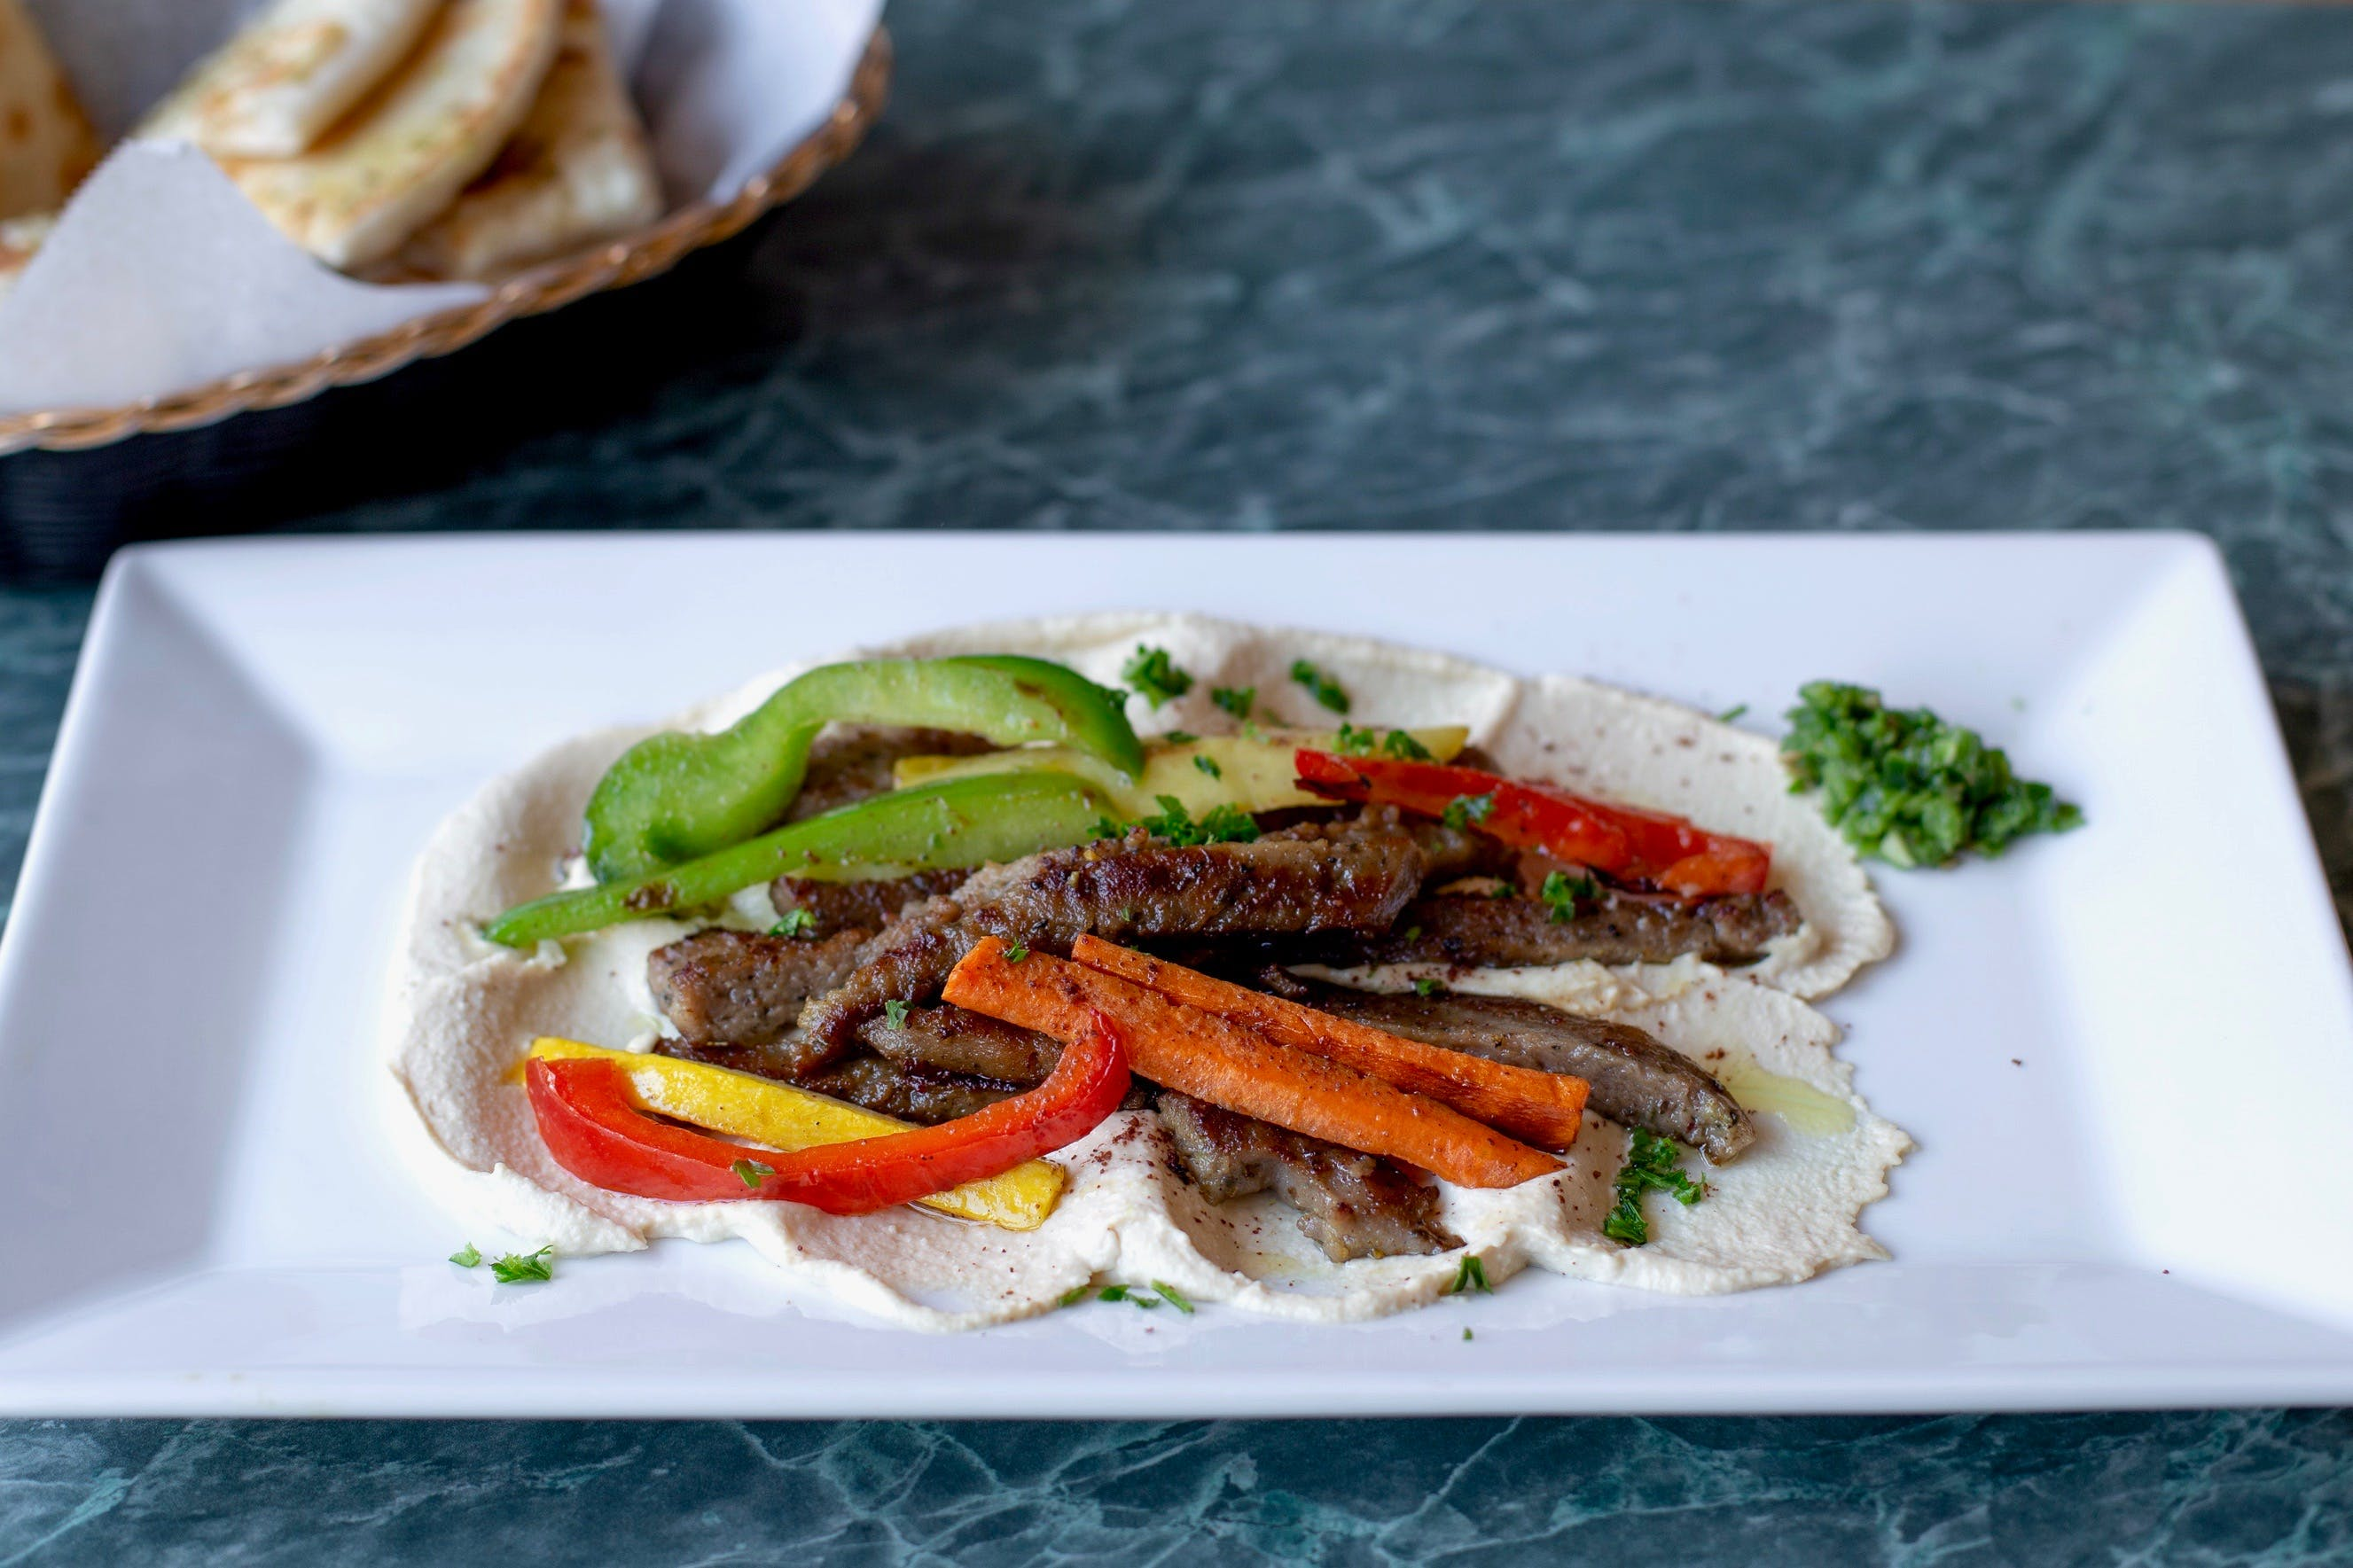 Gyro Hummus - Appetizer from Aladdin Cafe in Lawrence, KS